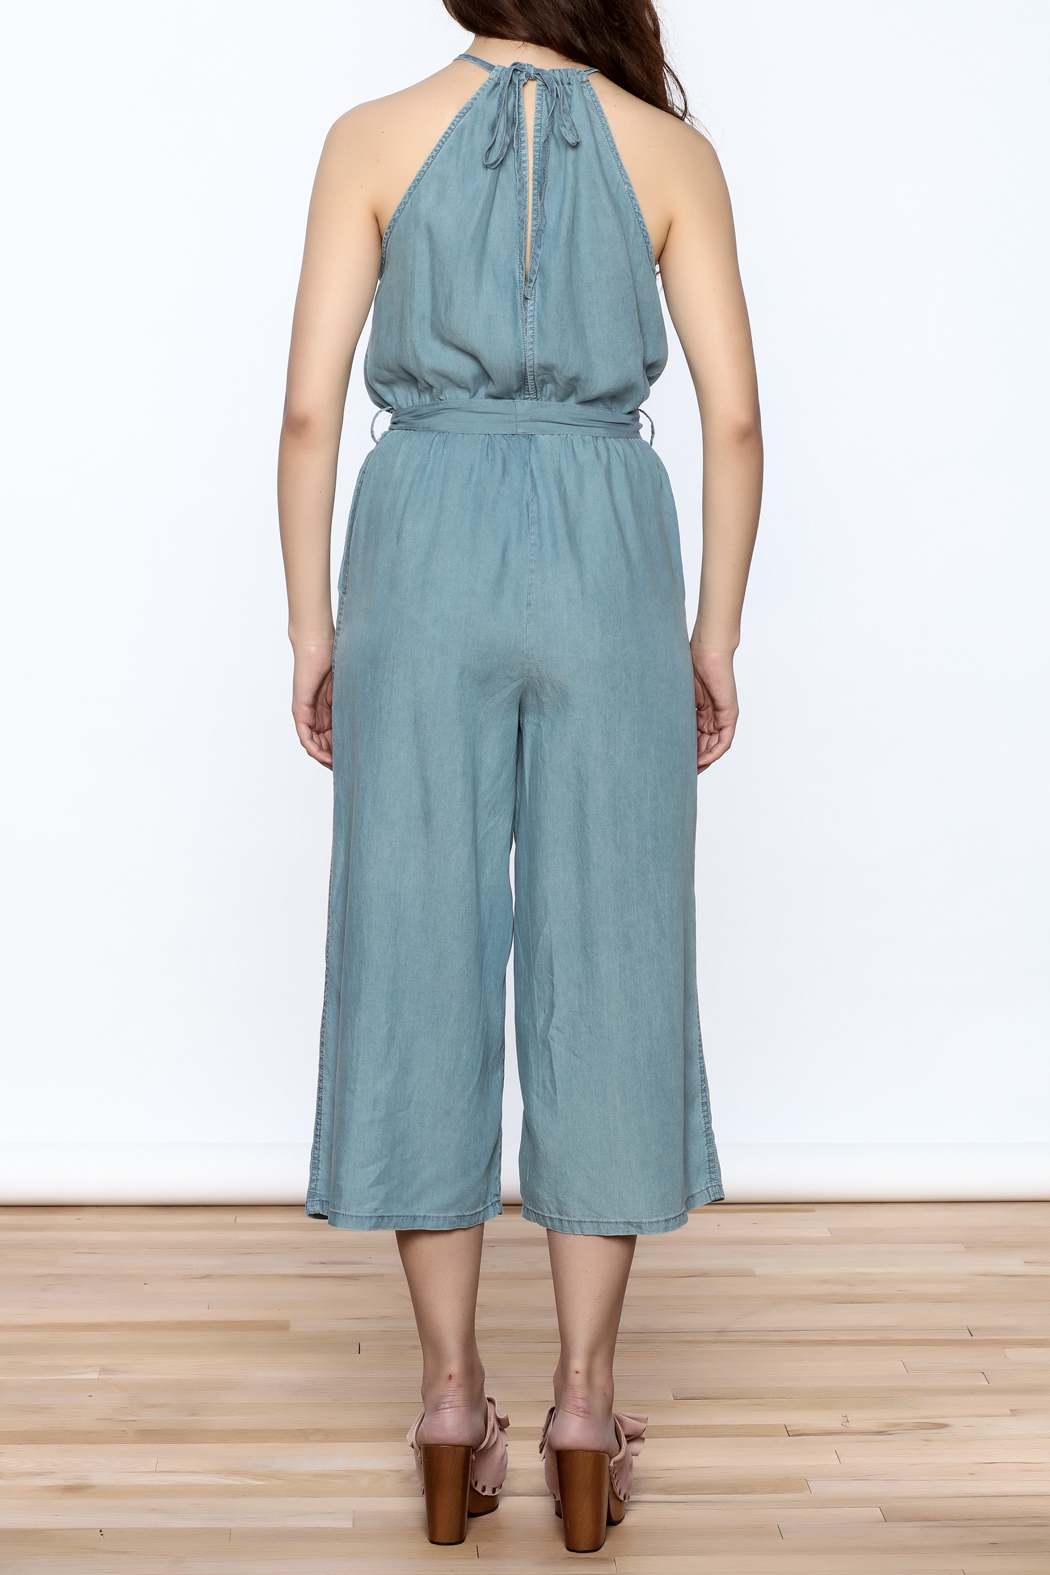 Do & Be Blue Culottes Jumpsuit - Back Cropped Image